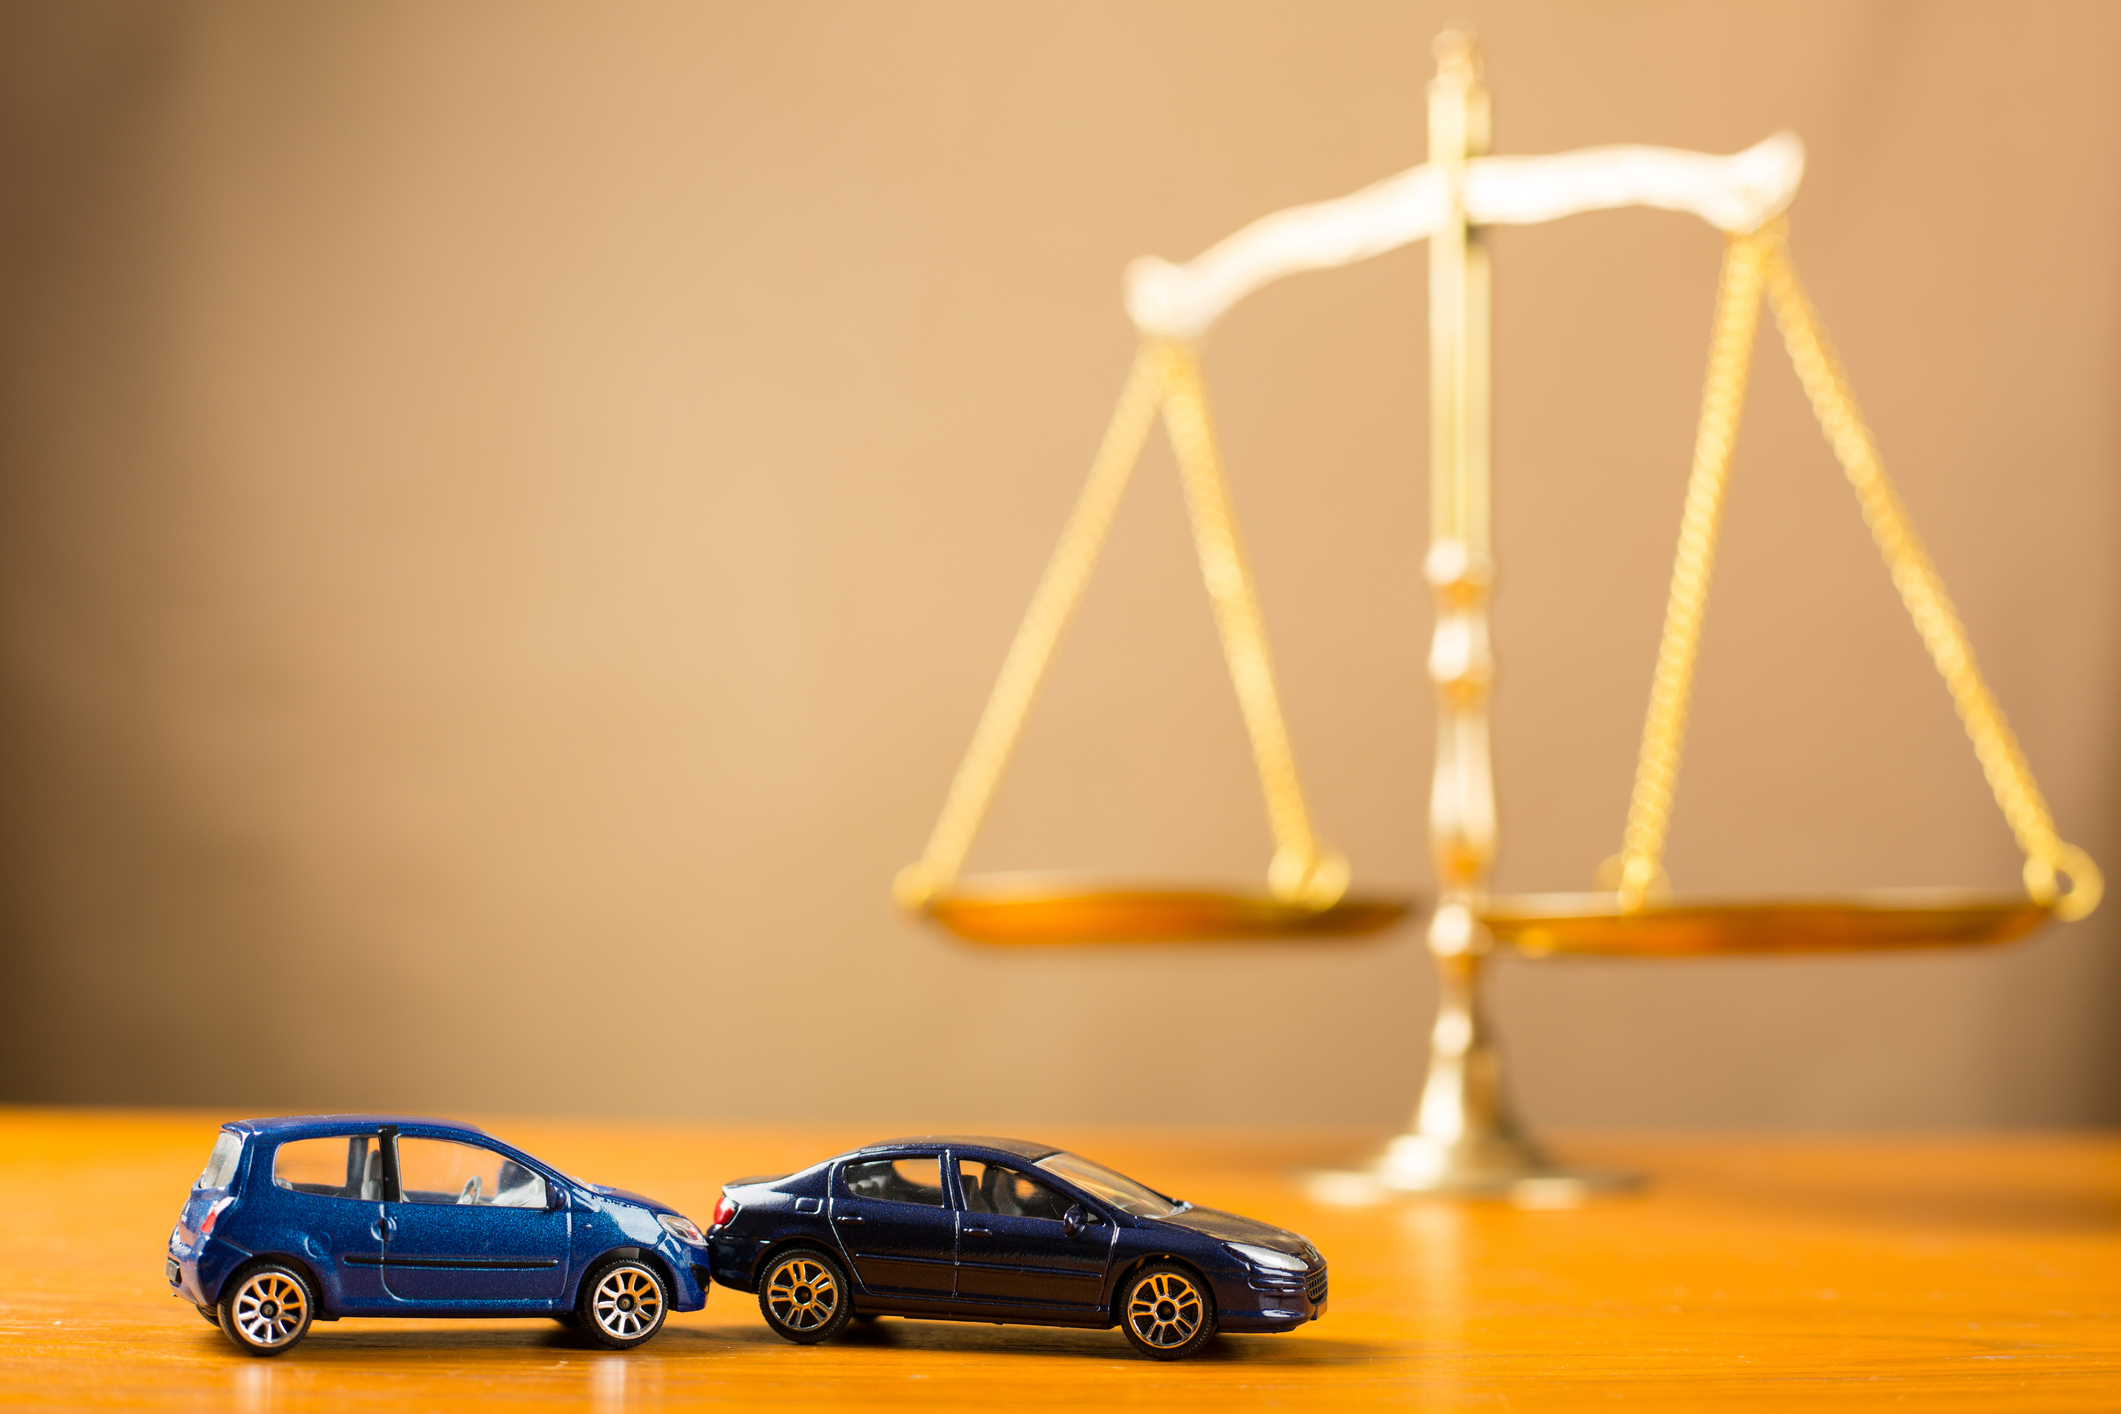 Determining Who's at Fault in a Car Accident - The Barnes Firm